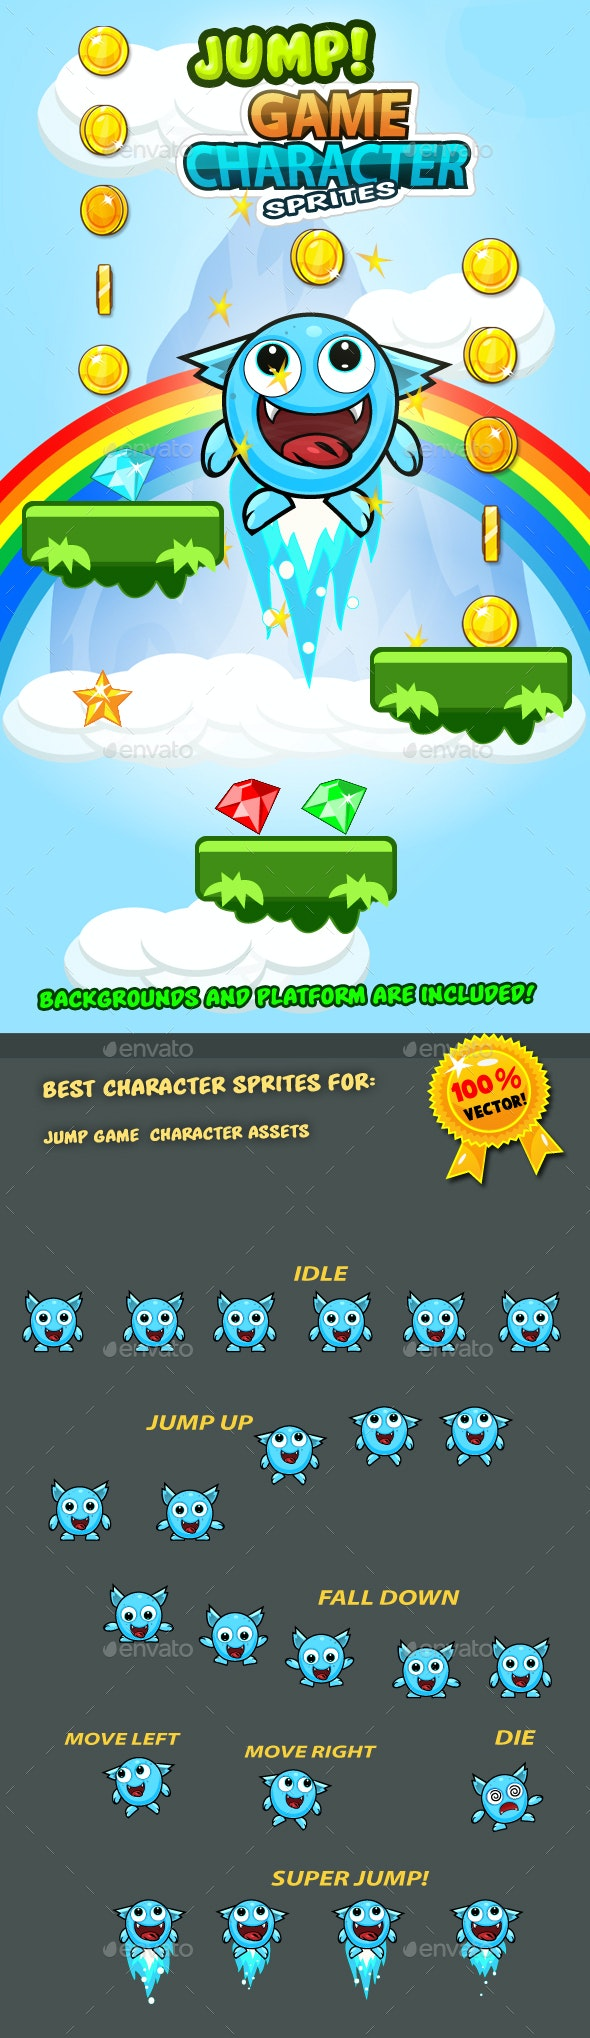 Jump Game Character Sprites 11 - Tilesets Game Assets